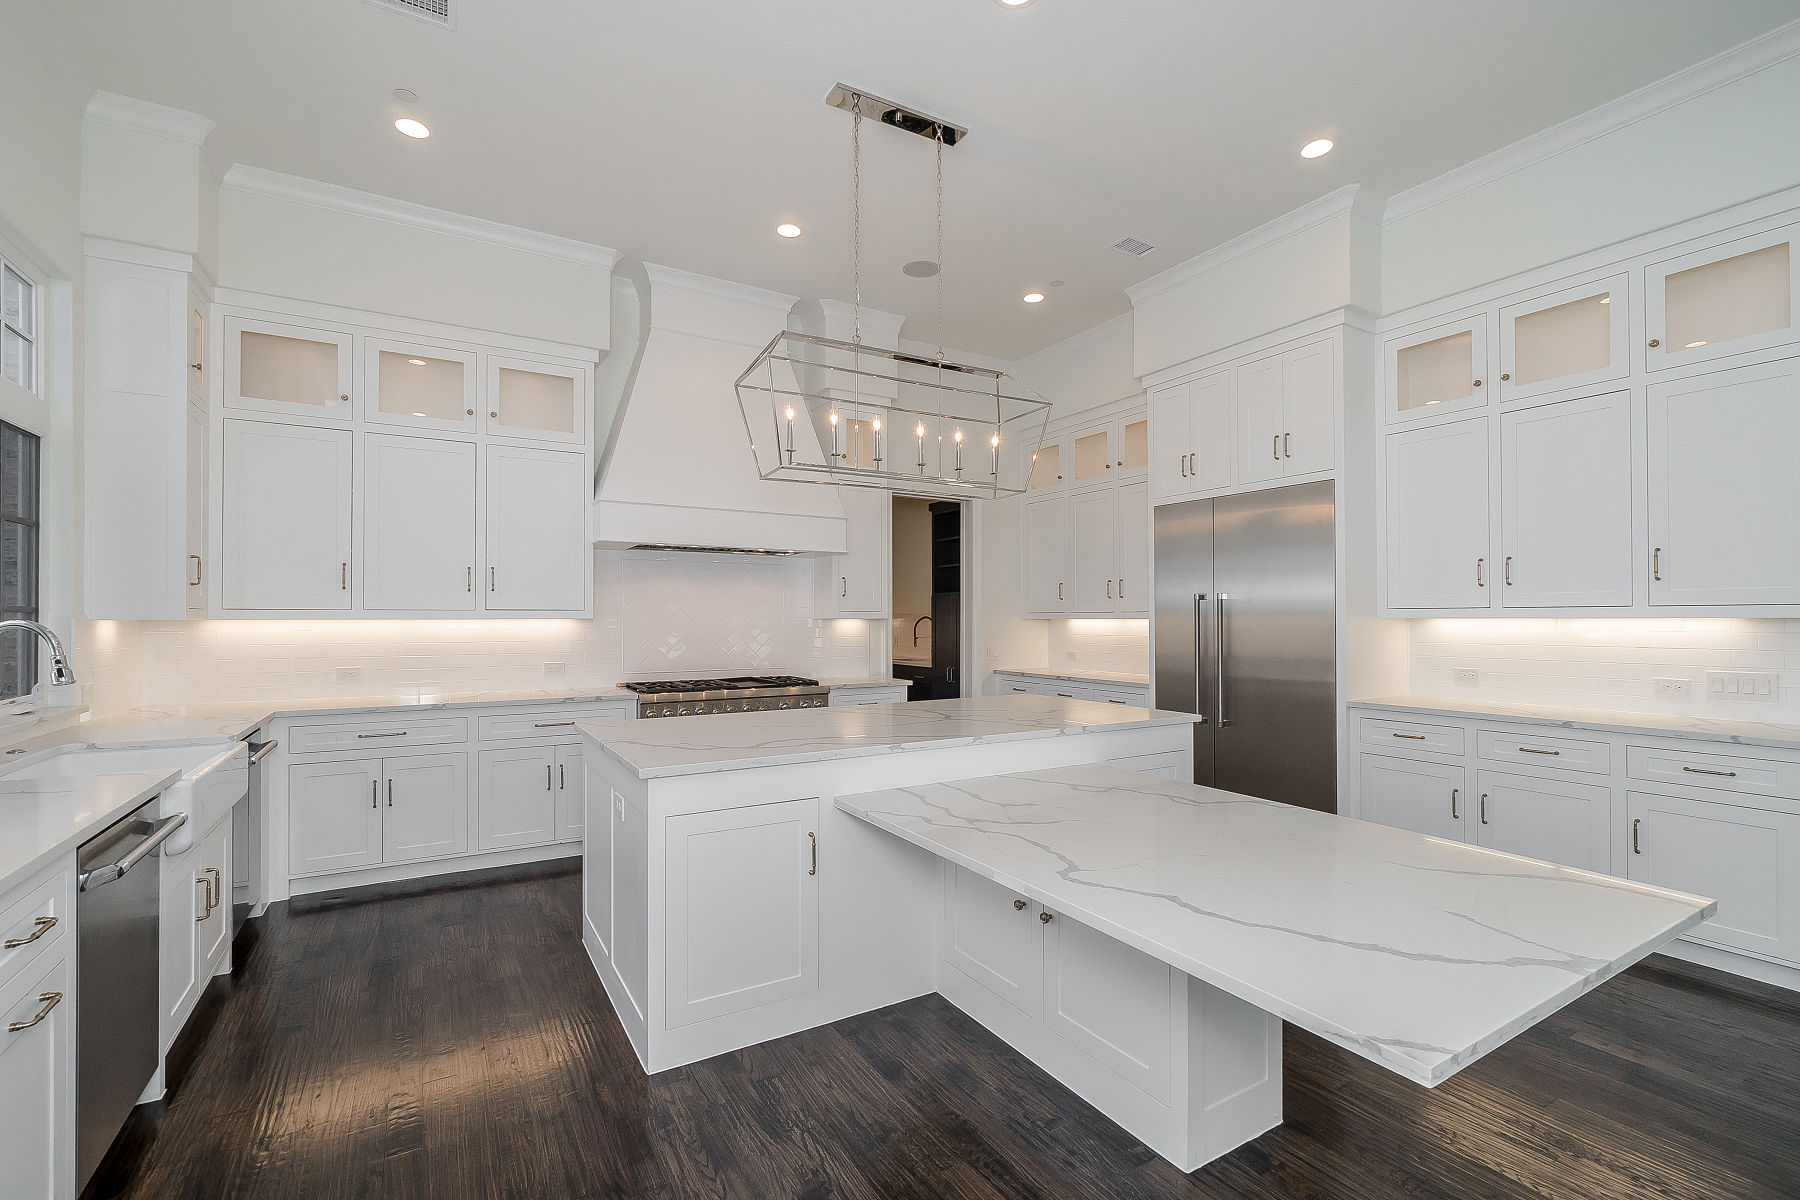 Custom Home Builder, Photographer, Ron McHam, Commercial Real Estate, 917 Tranquility Drive Fairview Texas 75069 (3).jpg